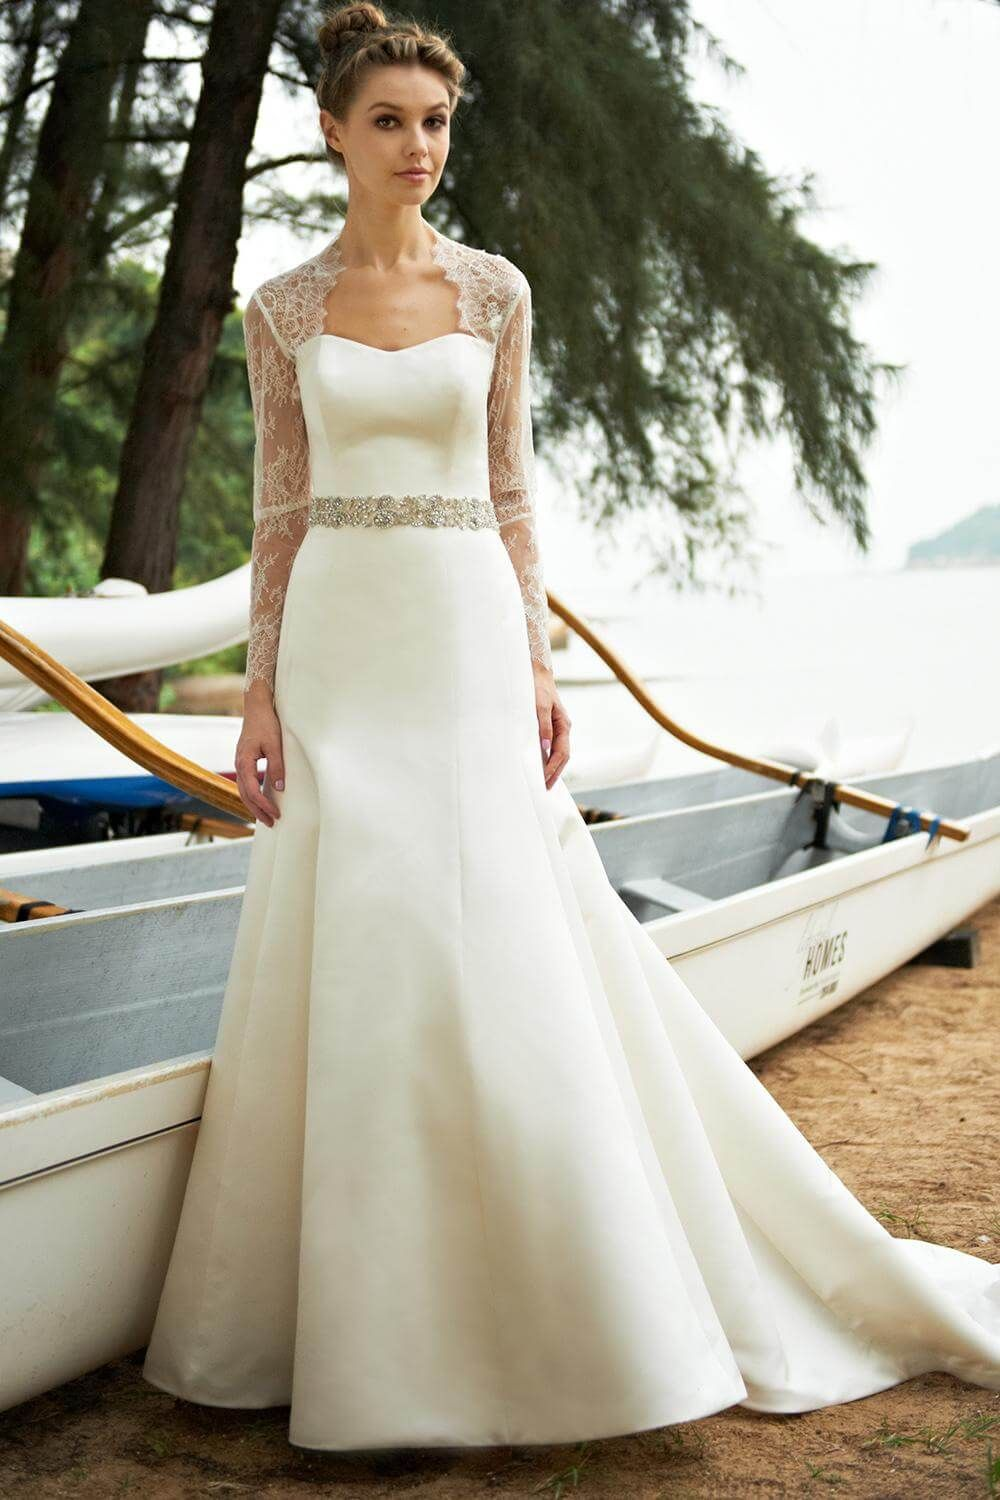 The Best Wedding Dresses For Fat Arms